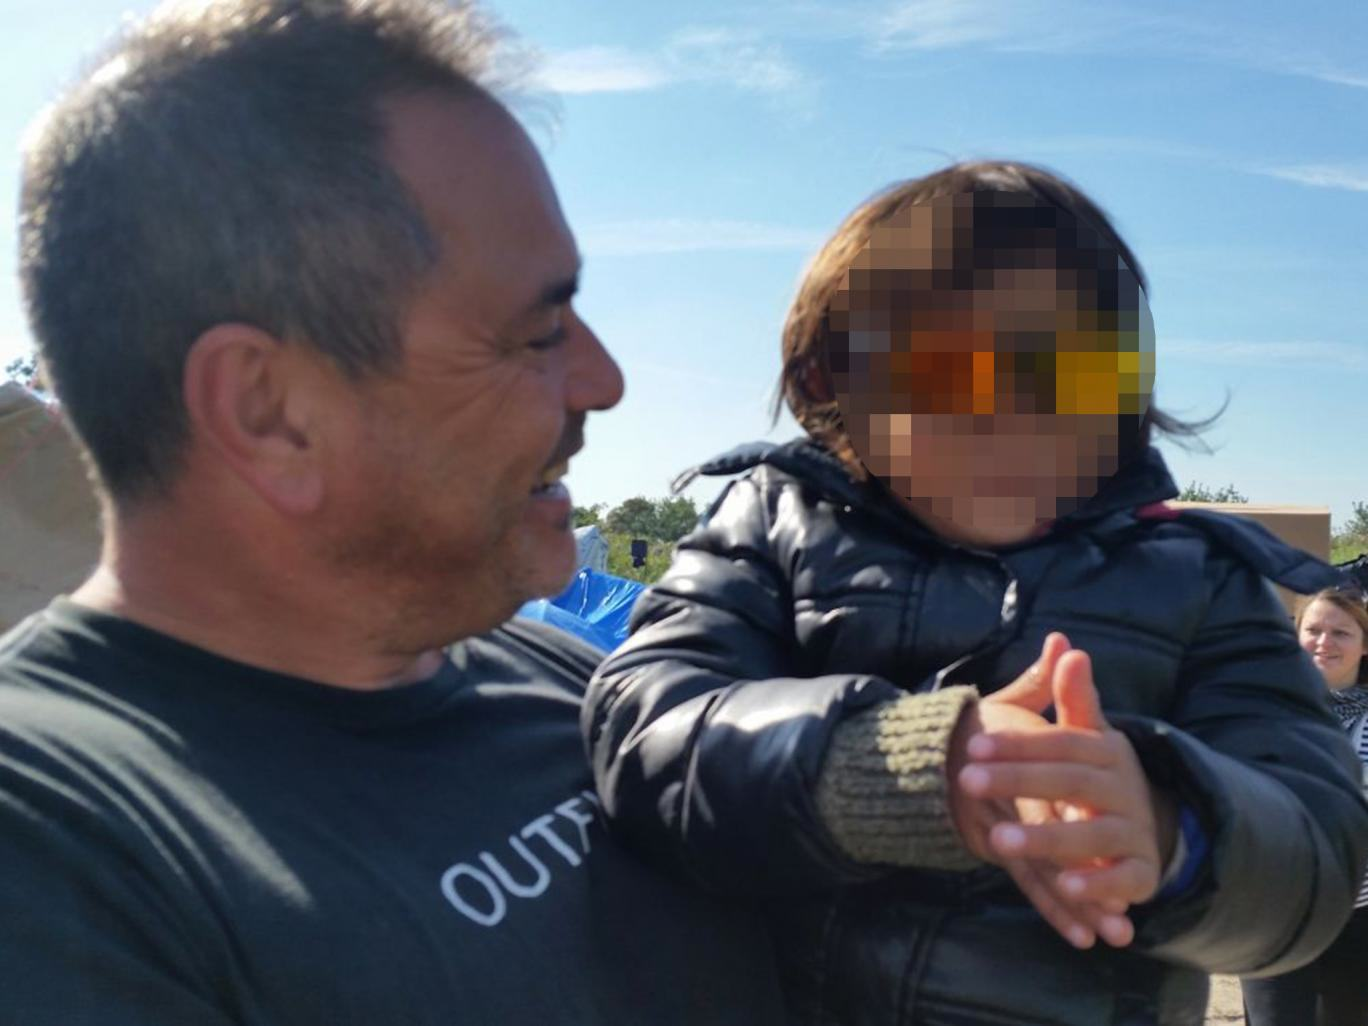 Ex Soldier Is Facing Prison For Trying To Rescue Refugee Girl, 4 UNILAD refugee save 170193